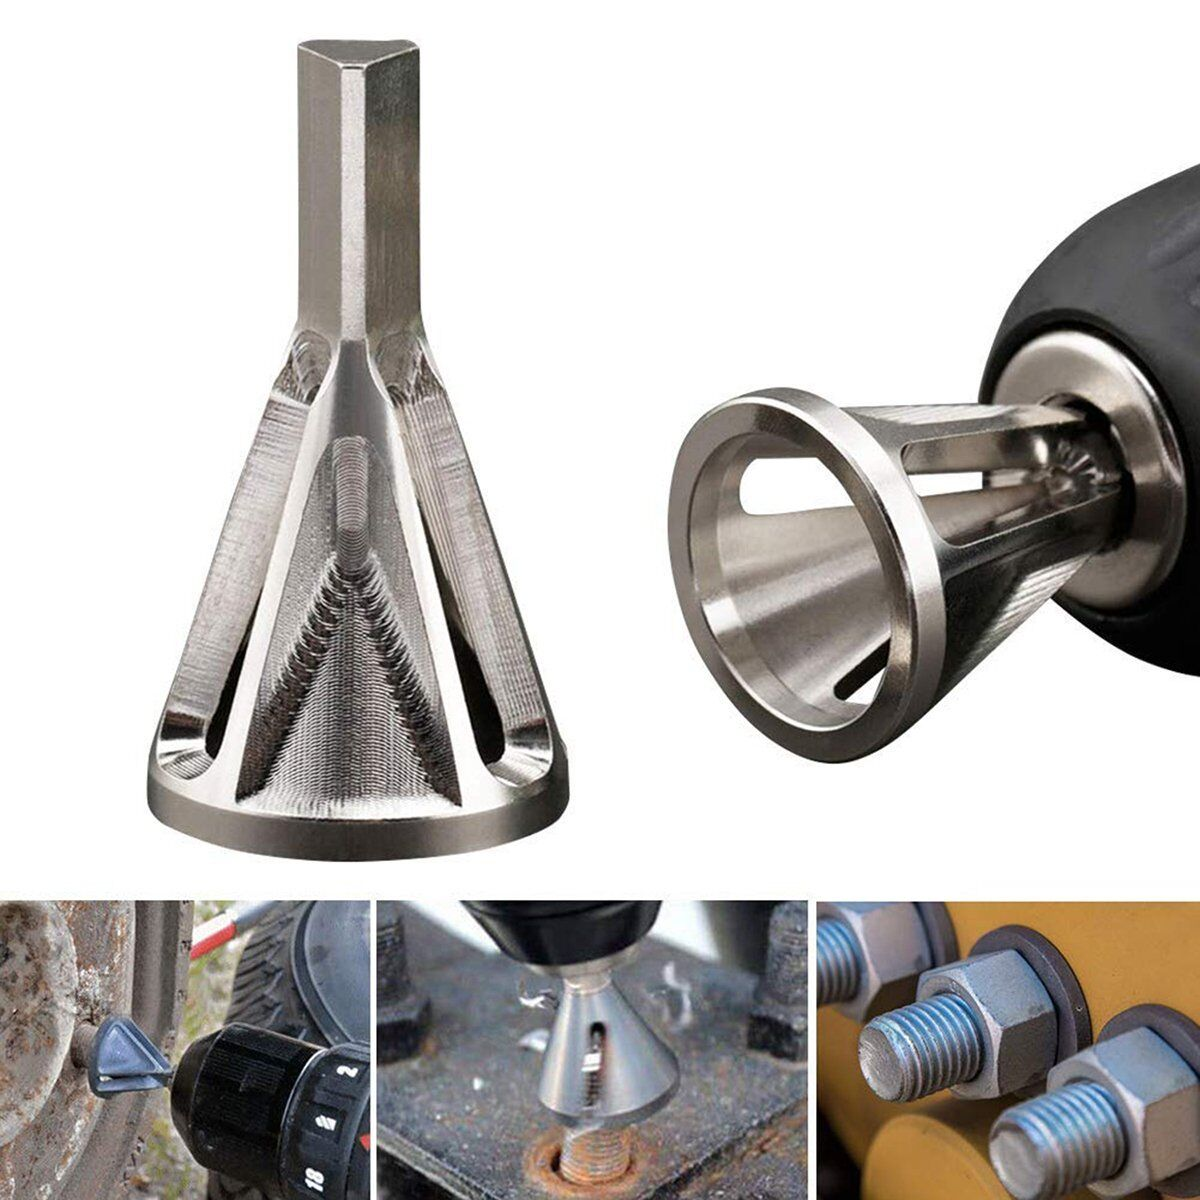 Stainless Steel Remove Burr Tools Drill Bit Durable Deburring External Chamfer